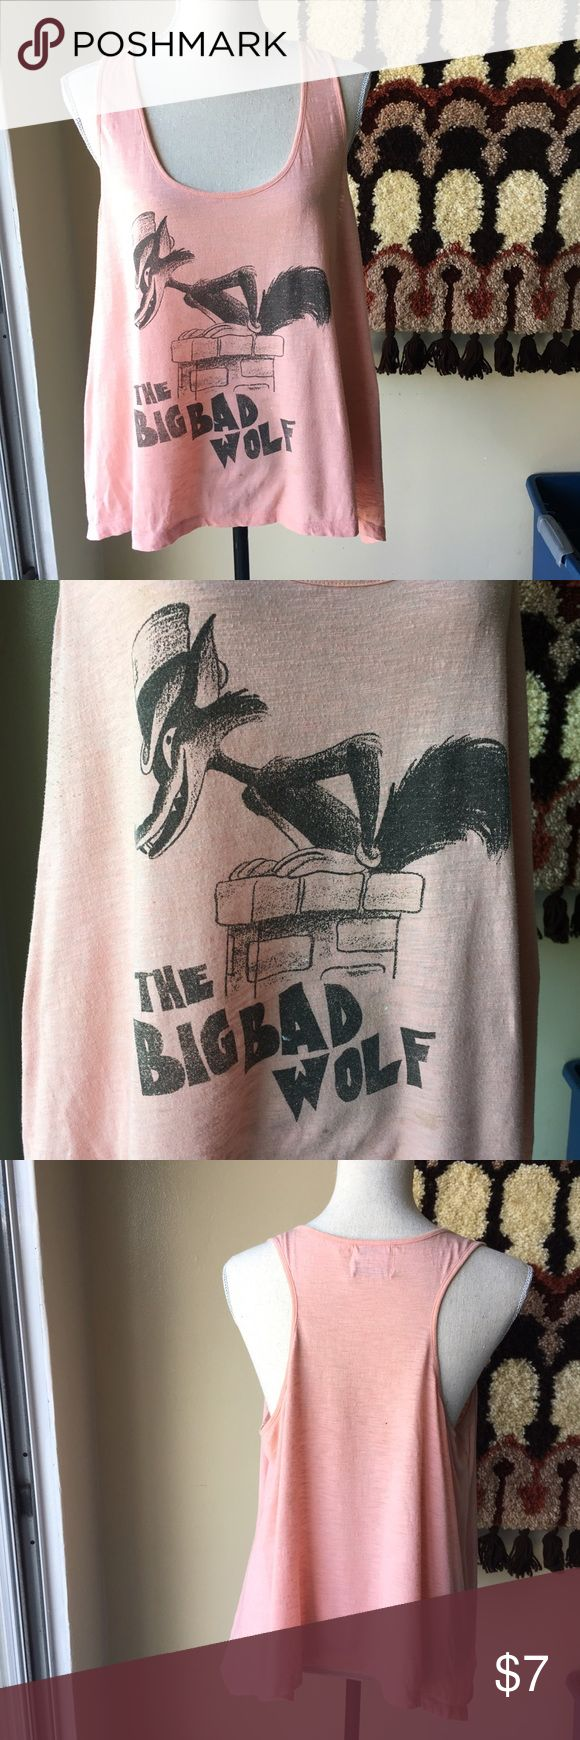 Disney for target pink big bad wolf razorback top Super sweet Disney collection for target 2012. Pink razorback shirt. Insanely soft and thin. Big bad wolf tank. Size XL. Cotton/poly. Some pilling and paint spots totally just add to the vintage tags like charm. I wore this out a few times. Just been sitting. Disney Tops Tank Tops